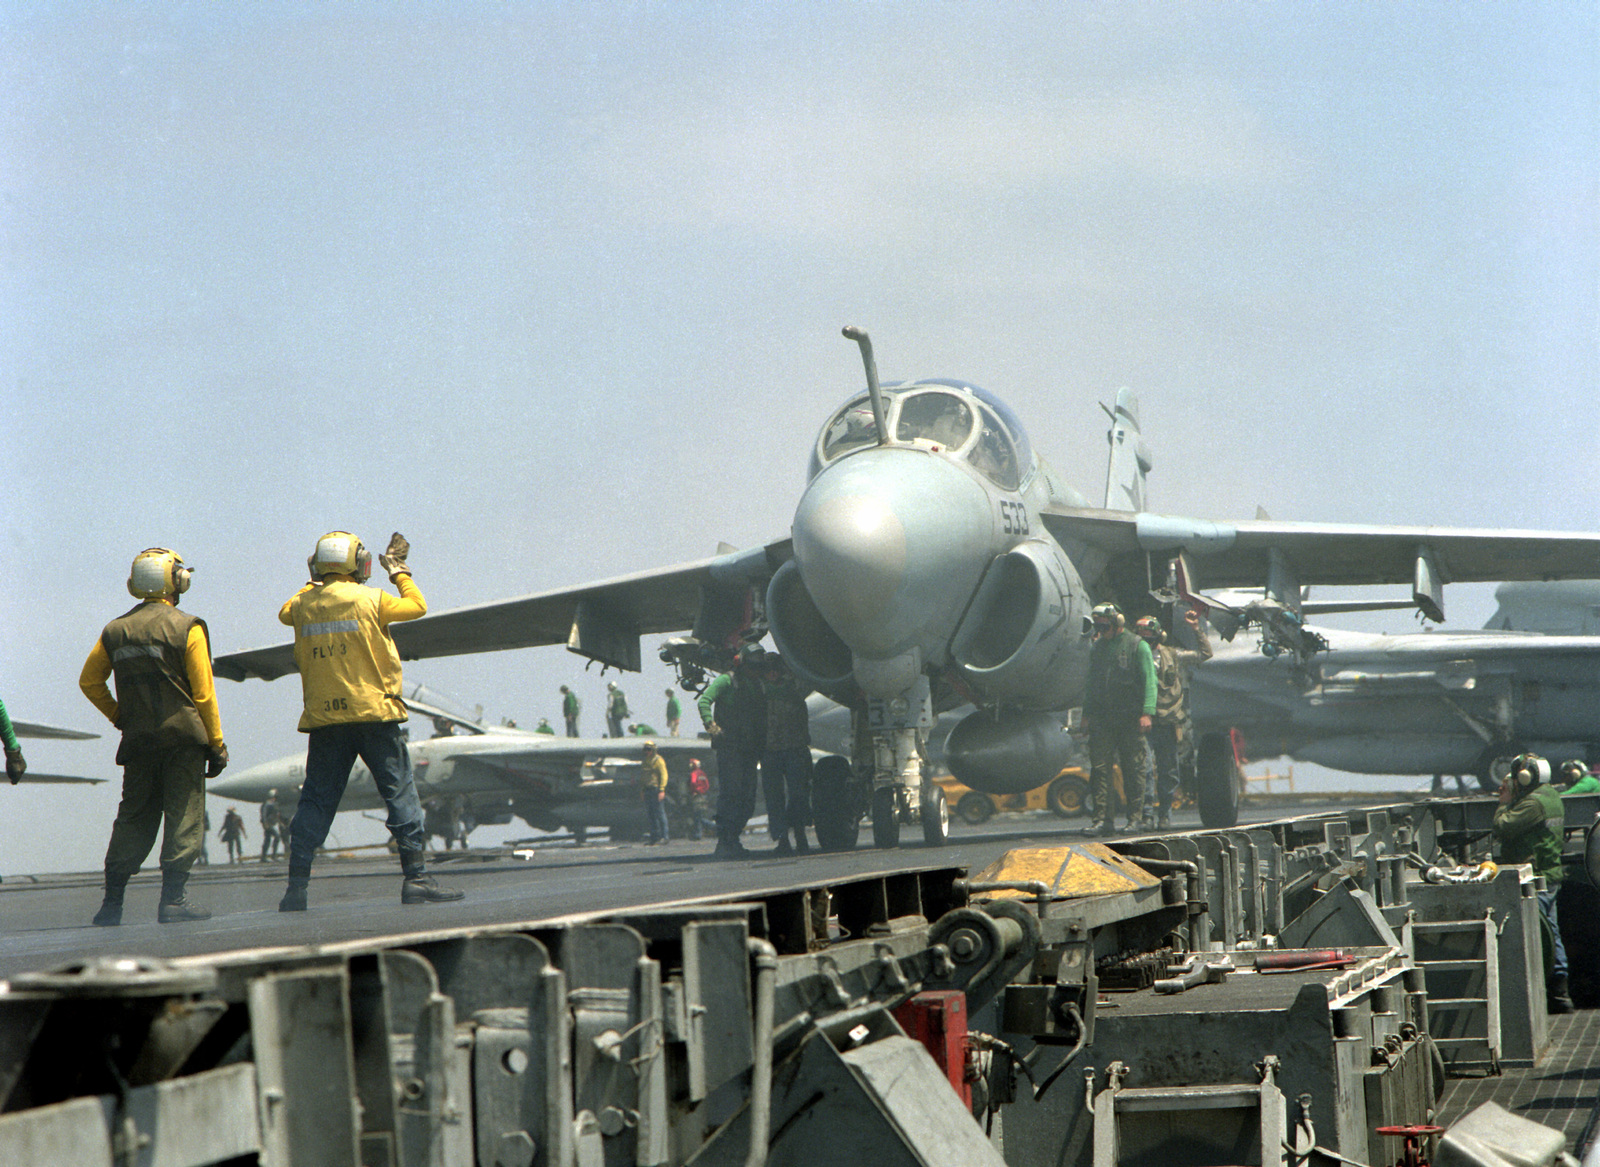 An Attack Squadron 36 (VA-36) A-6E Intruder aircraft is readied for launch on the flight deck of the nuclear-powered aircraft carrier USS THEODORE ROOSEVELT (CVN-71). The ROOSEVELT is on station in the eastern Mediterranean to support Operation Provide Comfort, a multinational effort to aid Kurdish refugees in southern Turkey and northern Iraq.